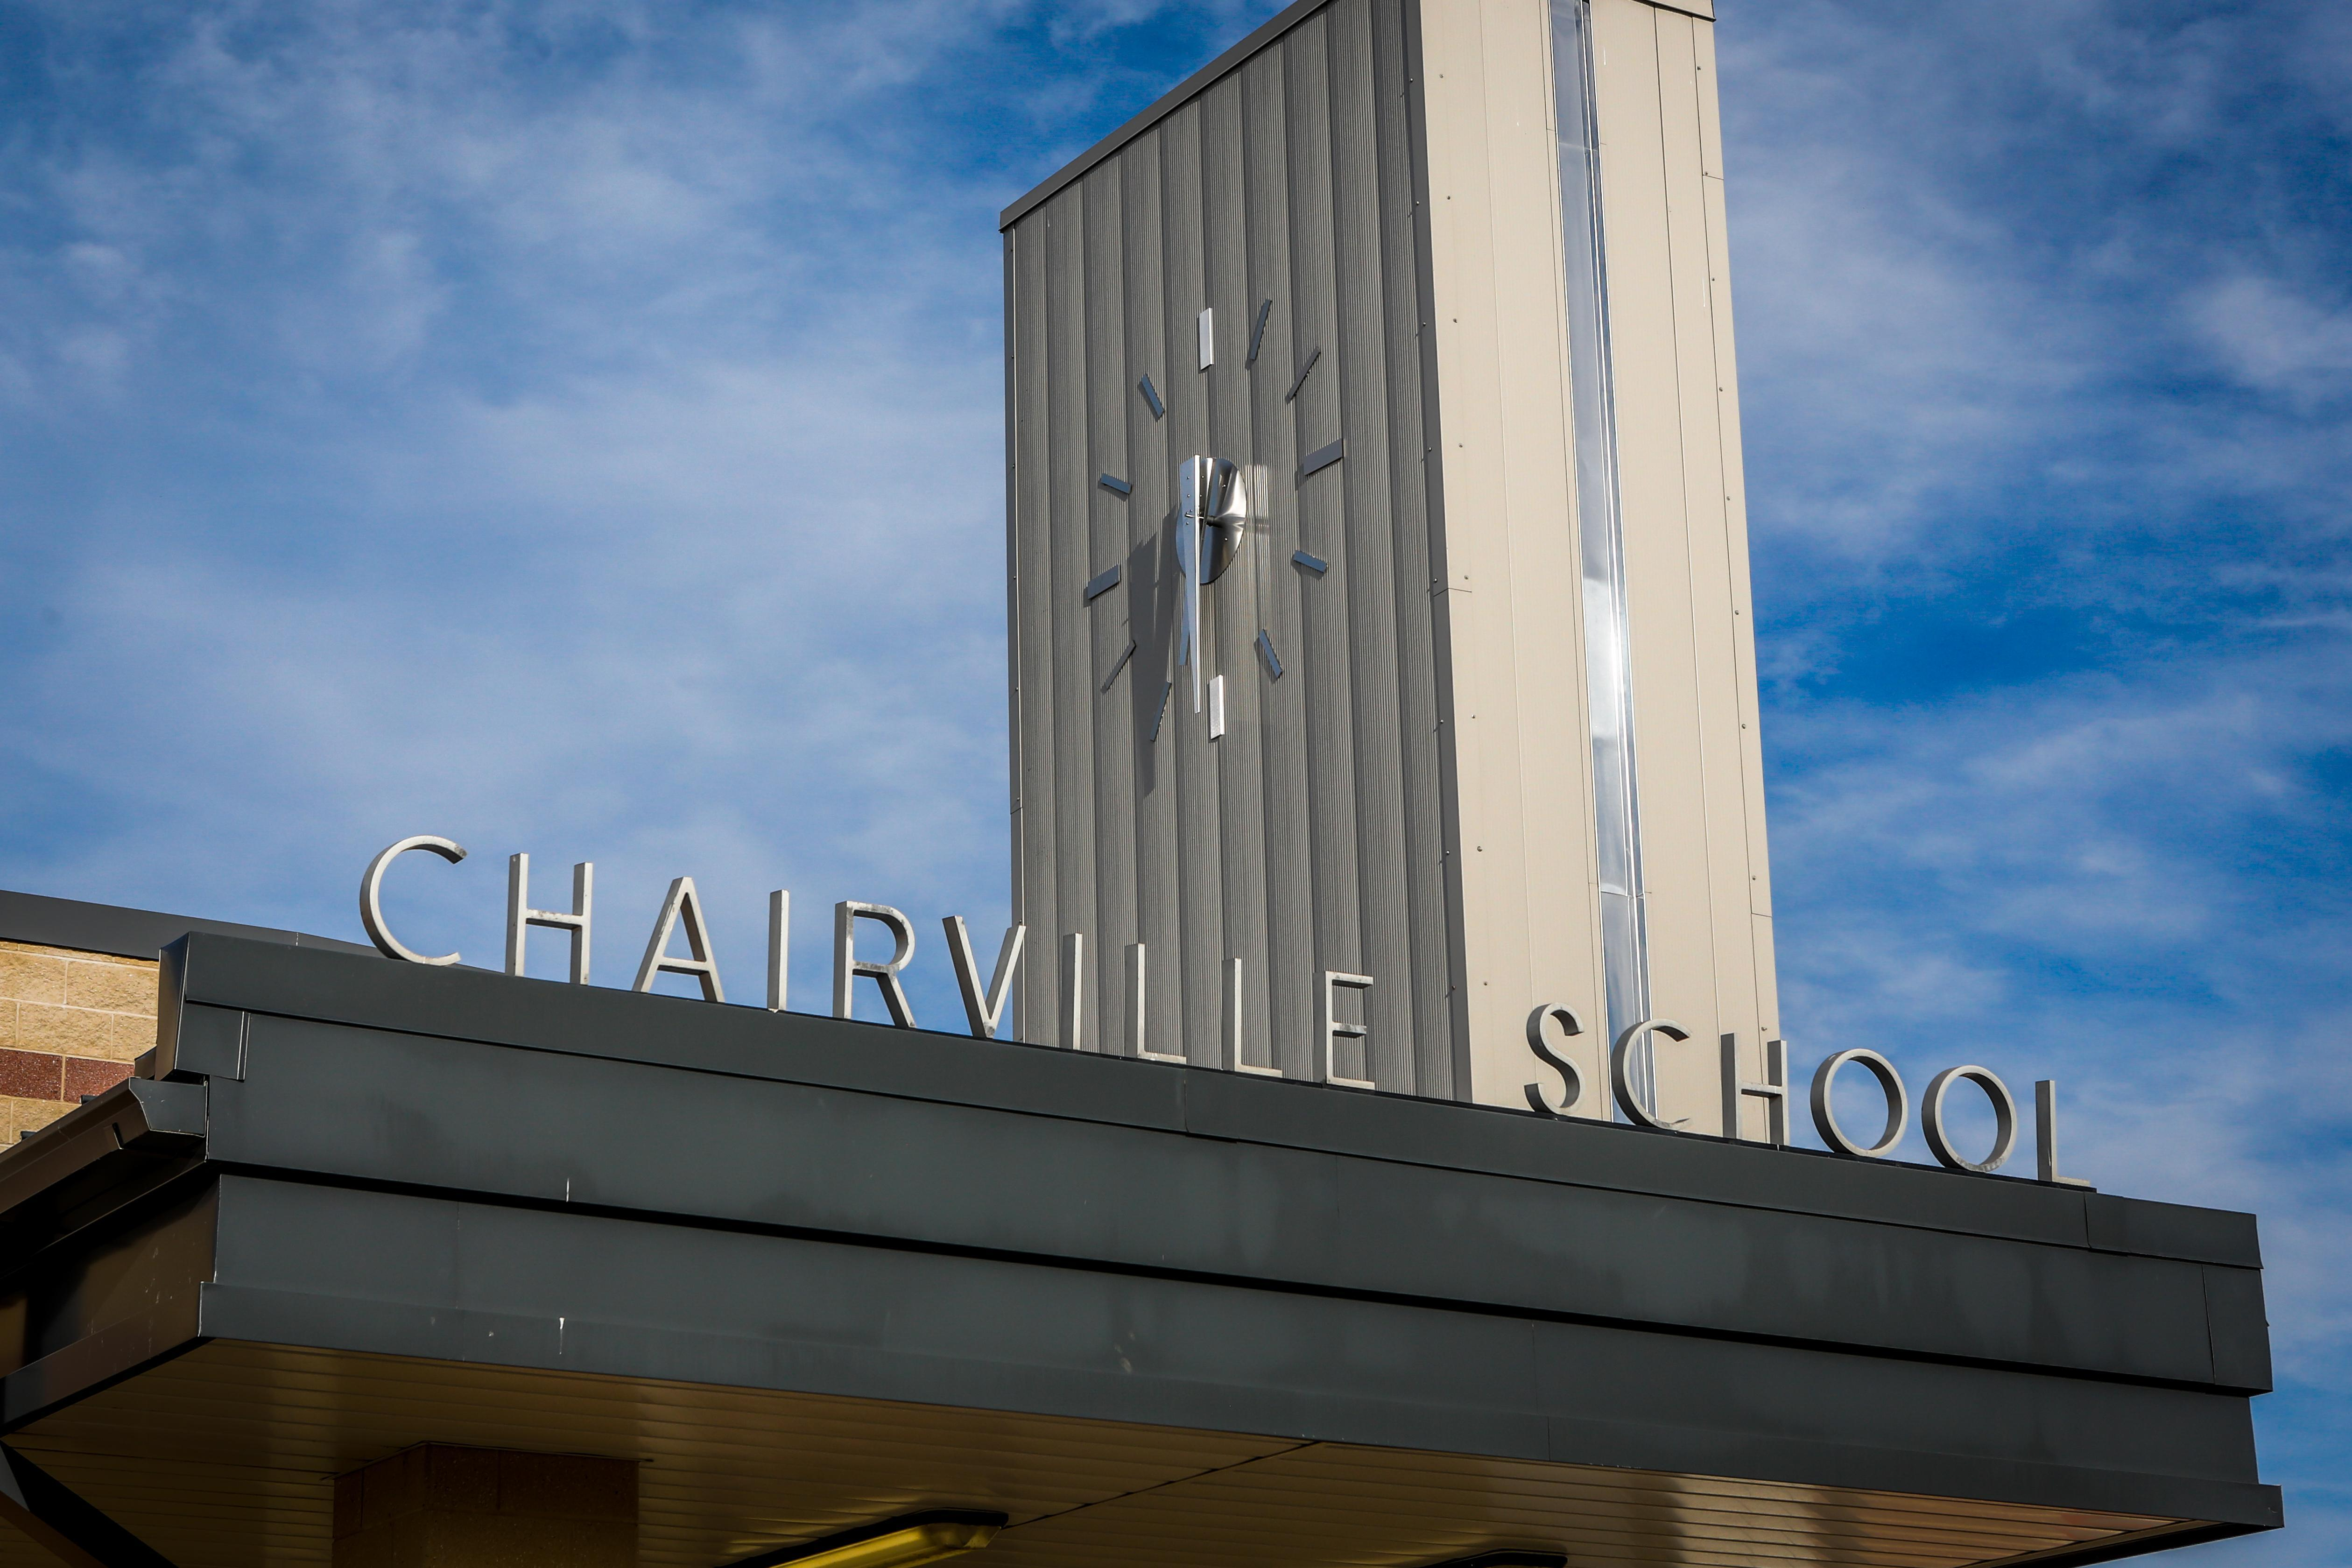 Picture of Chairville School